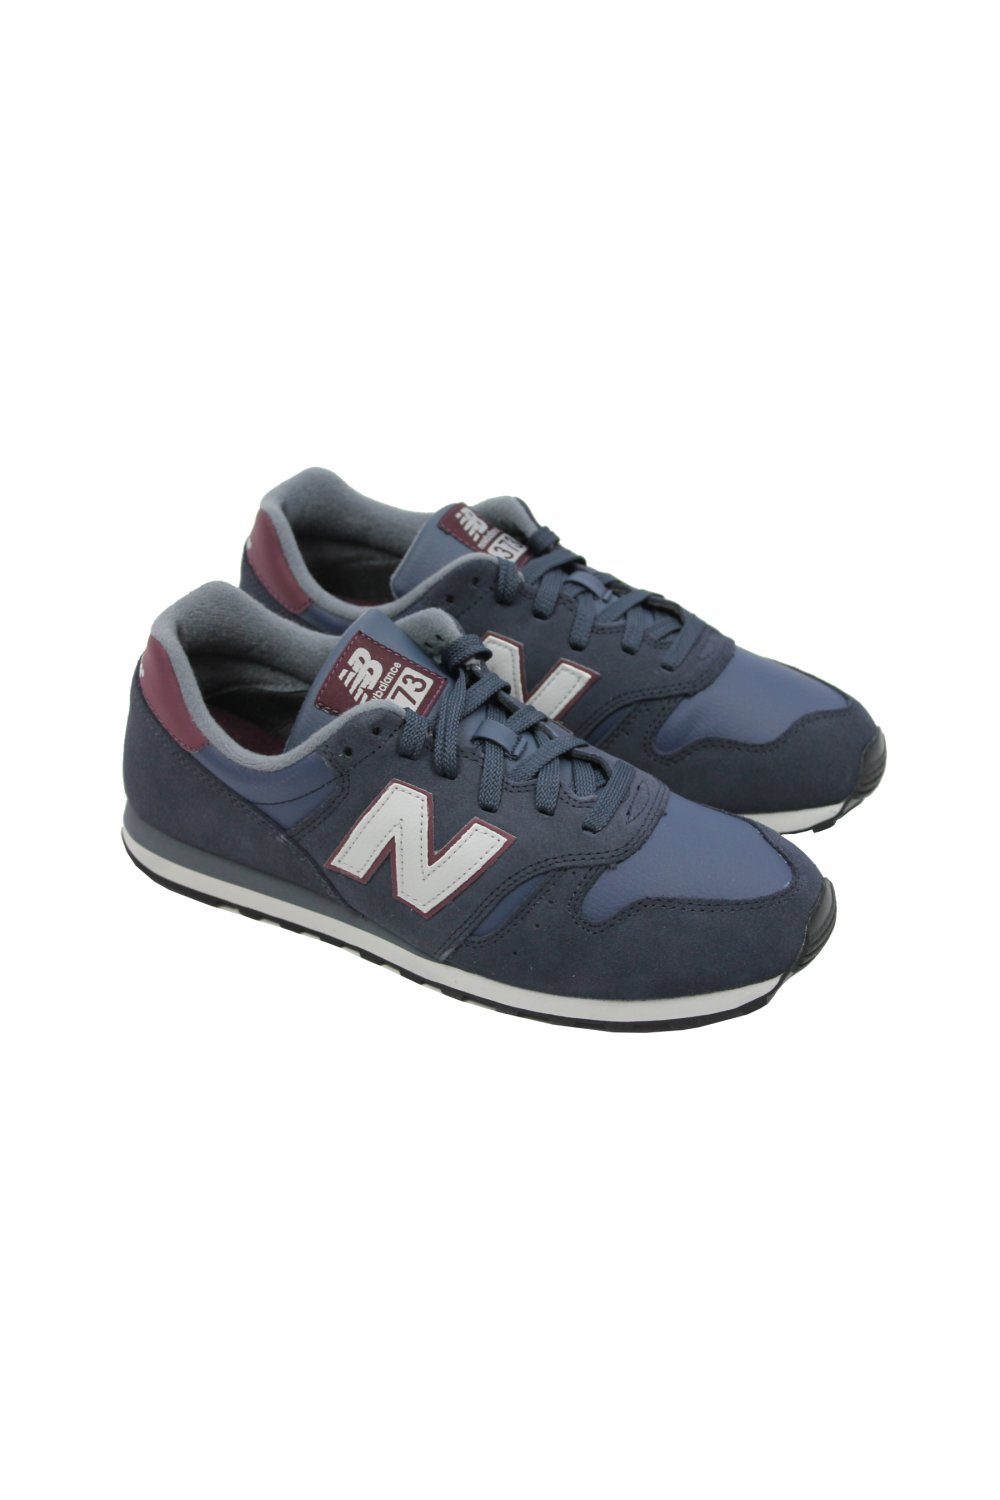 new concept a8122 575ad New Balance ML373NSR Trainers 'Suede Pack' (Navy/Red)